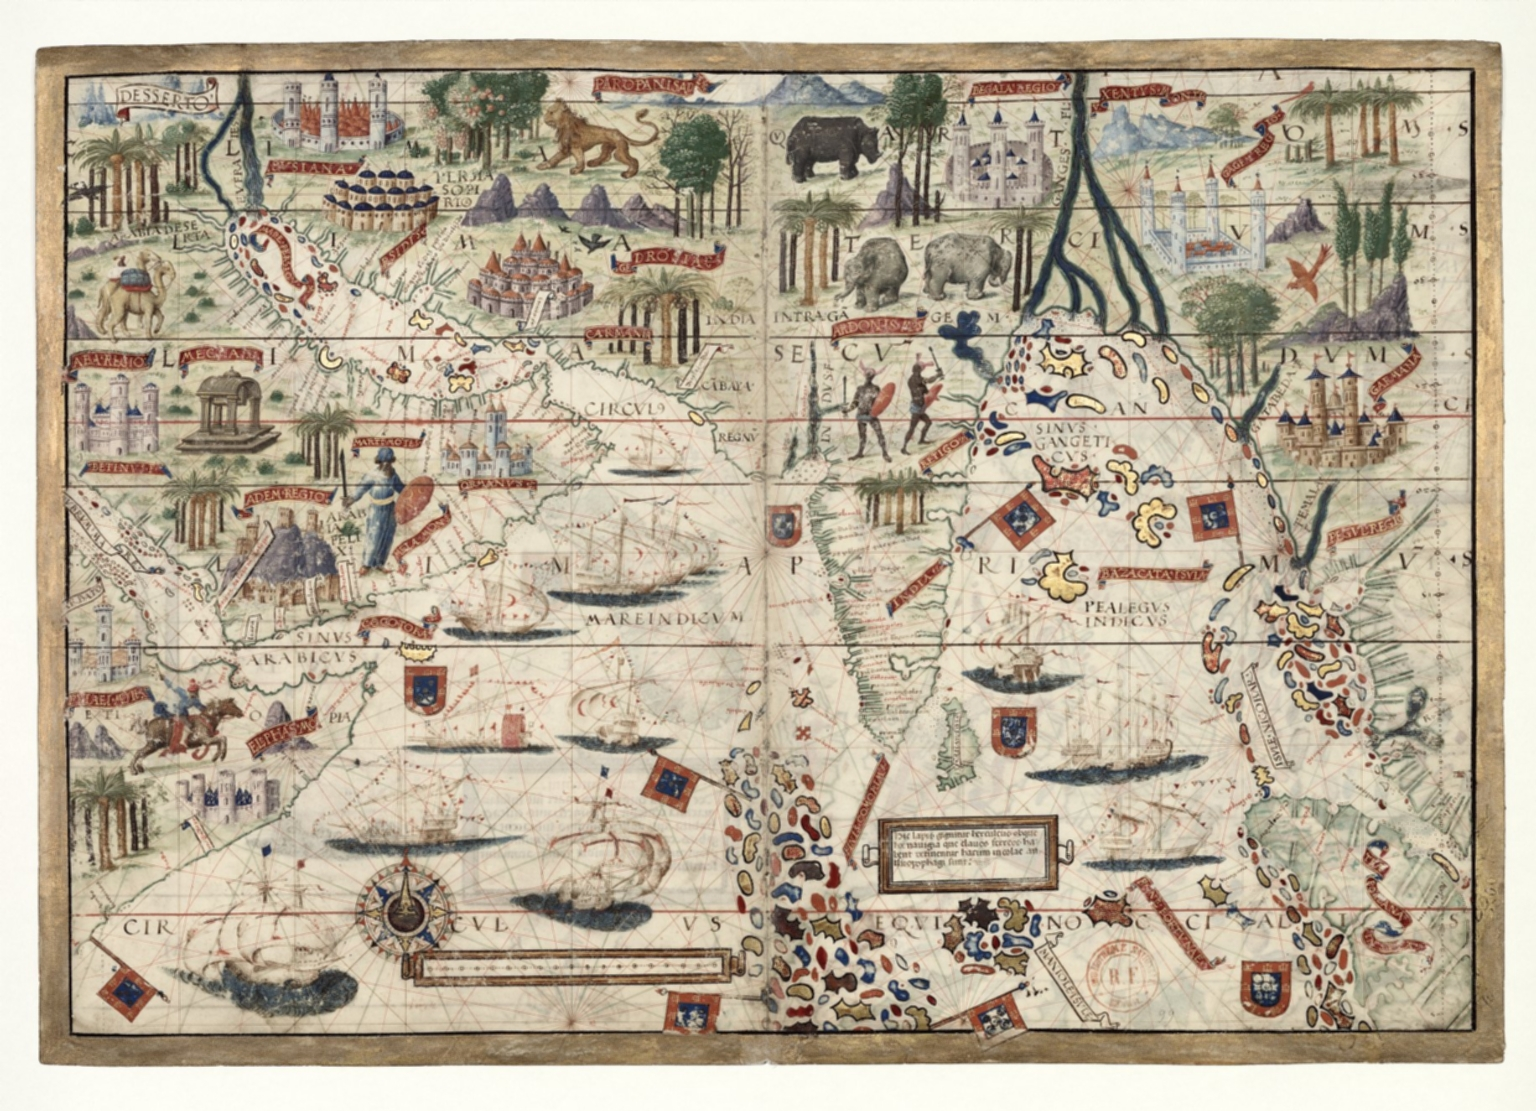 North Indian Ocean with Arabia and India, the atlas Miller